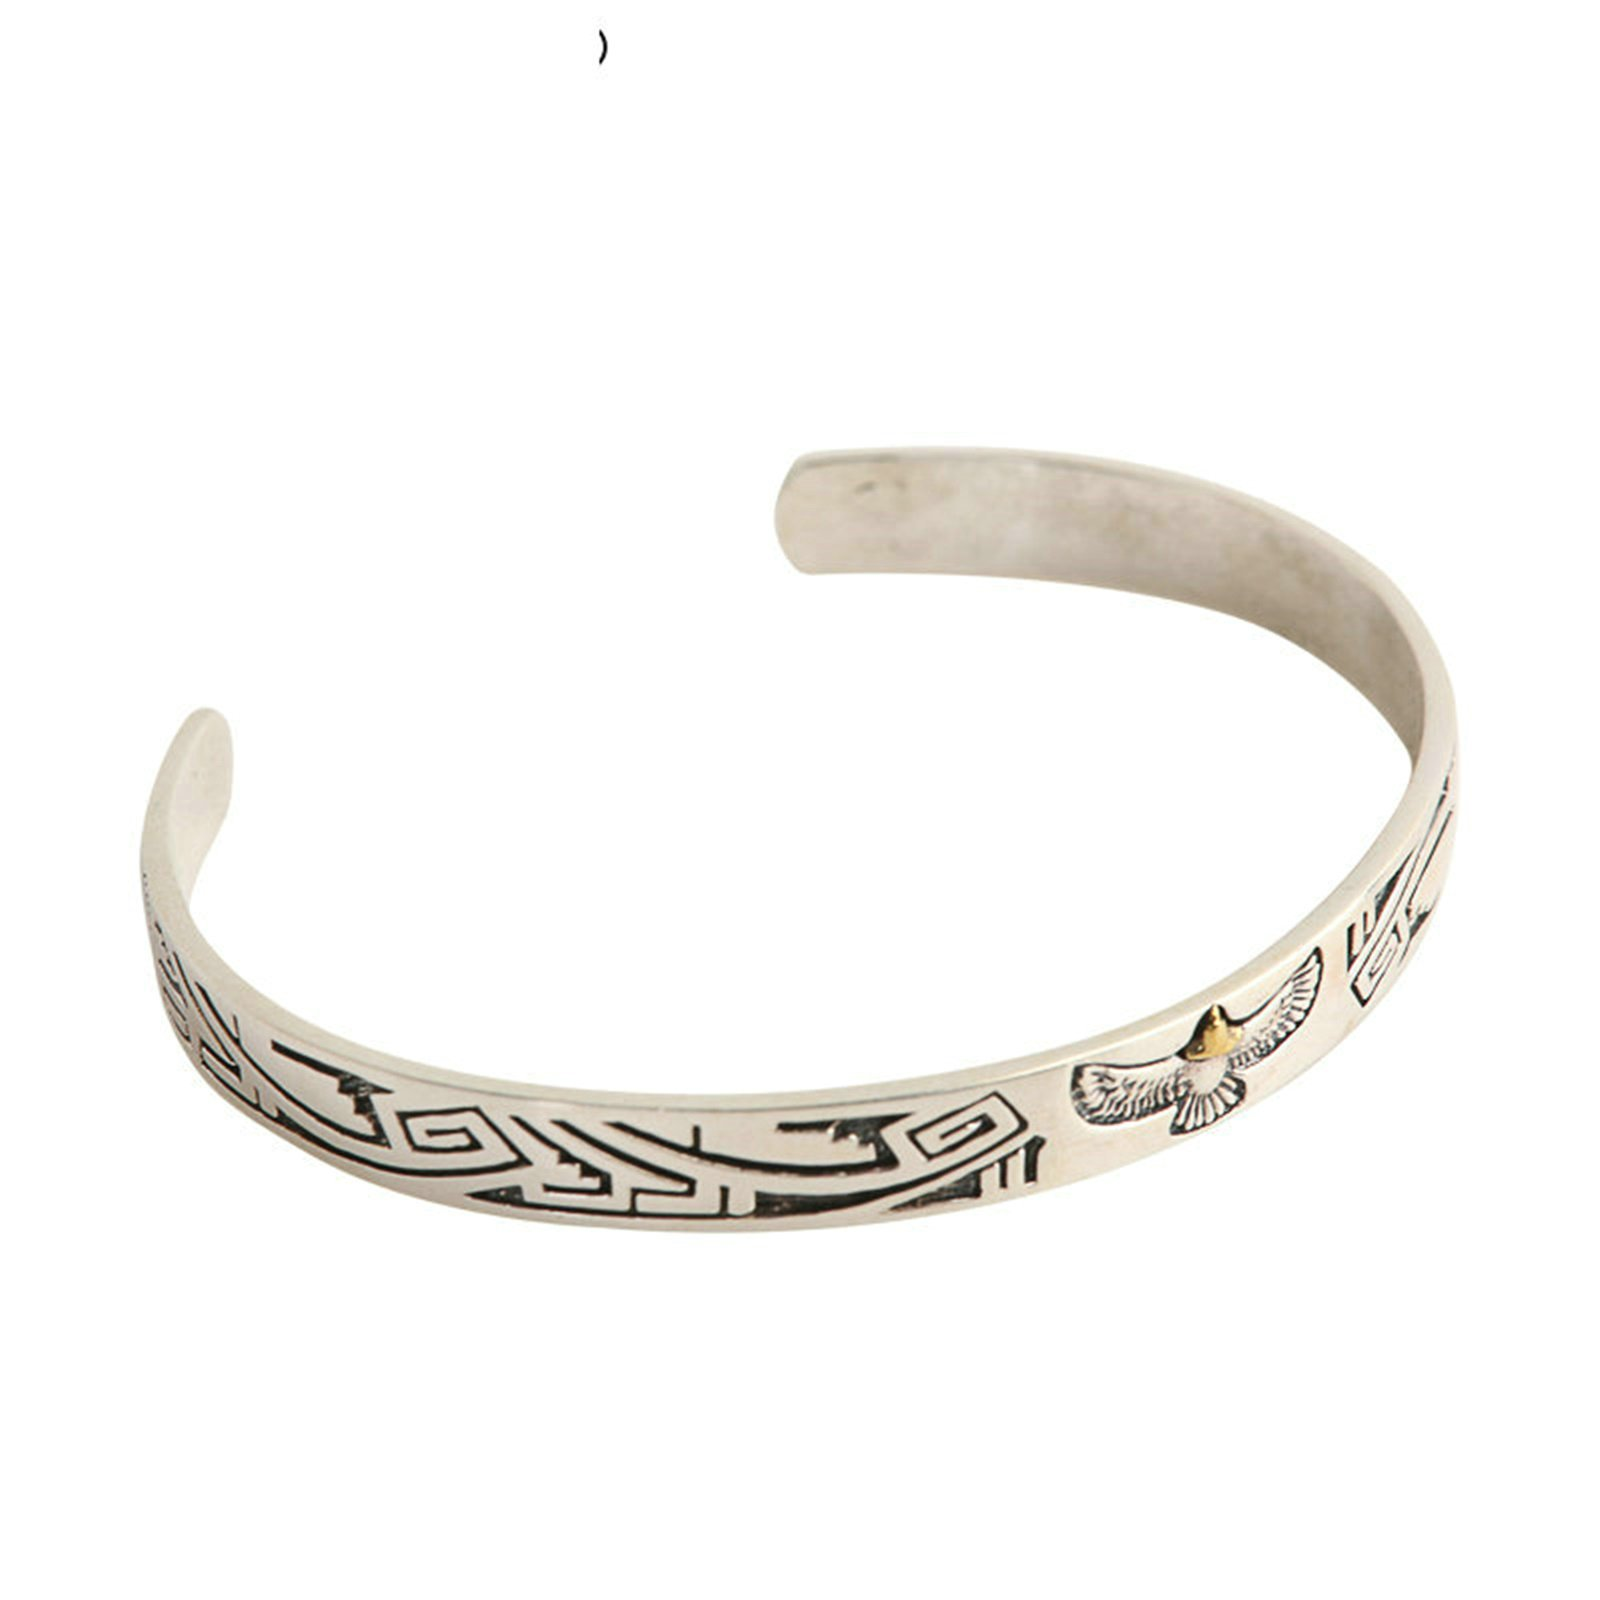 Daesar 925 Silver Bracelet For Men And Women Indian Eagle Totem Opening Bracelet Silver